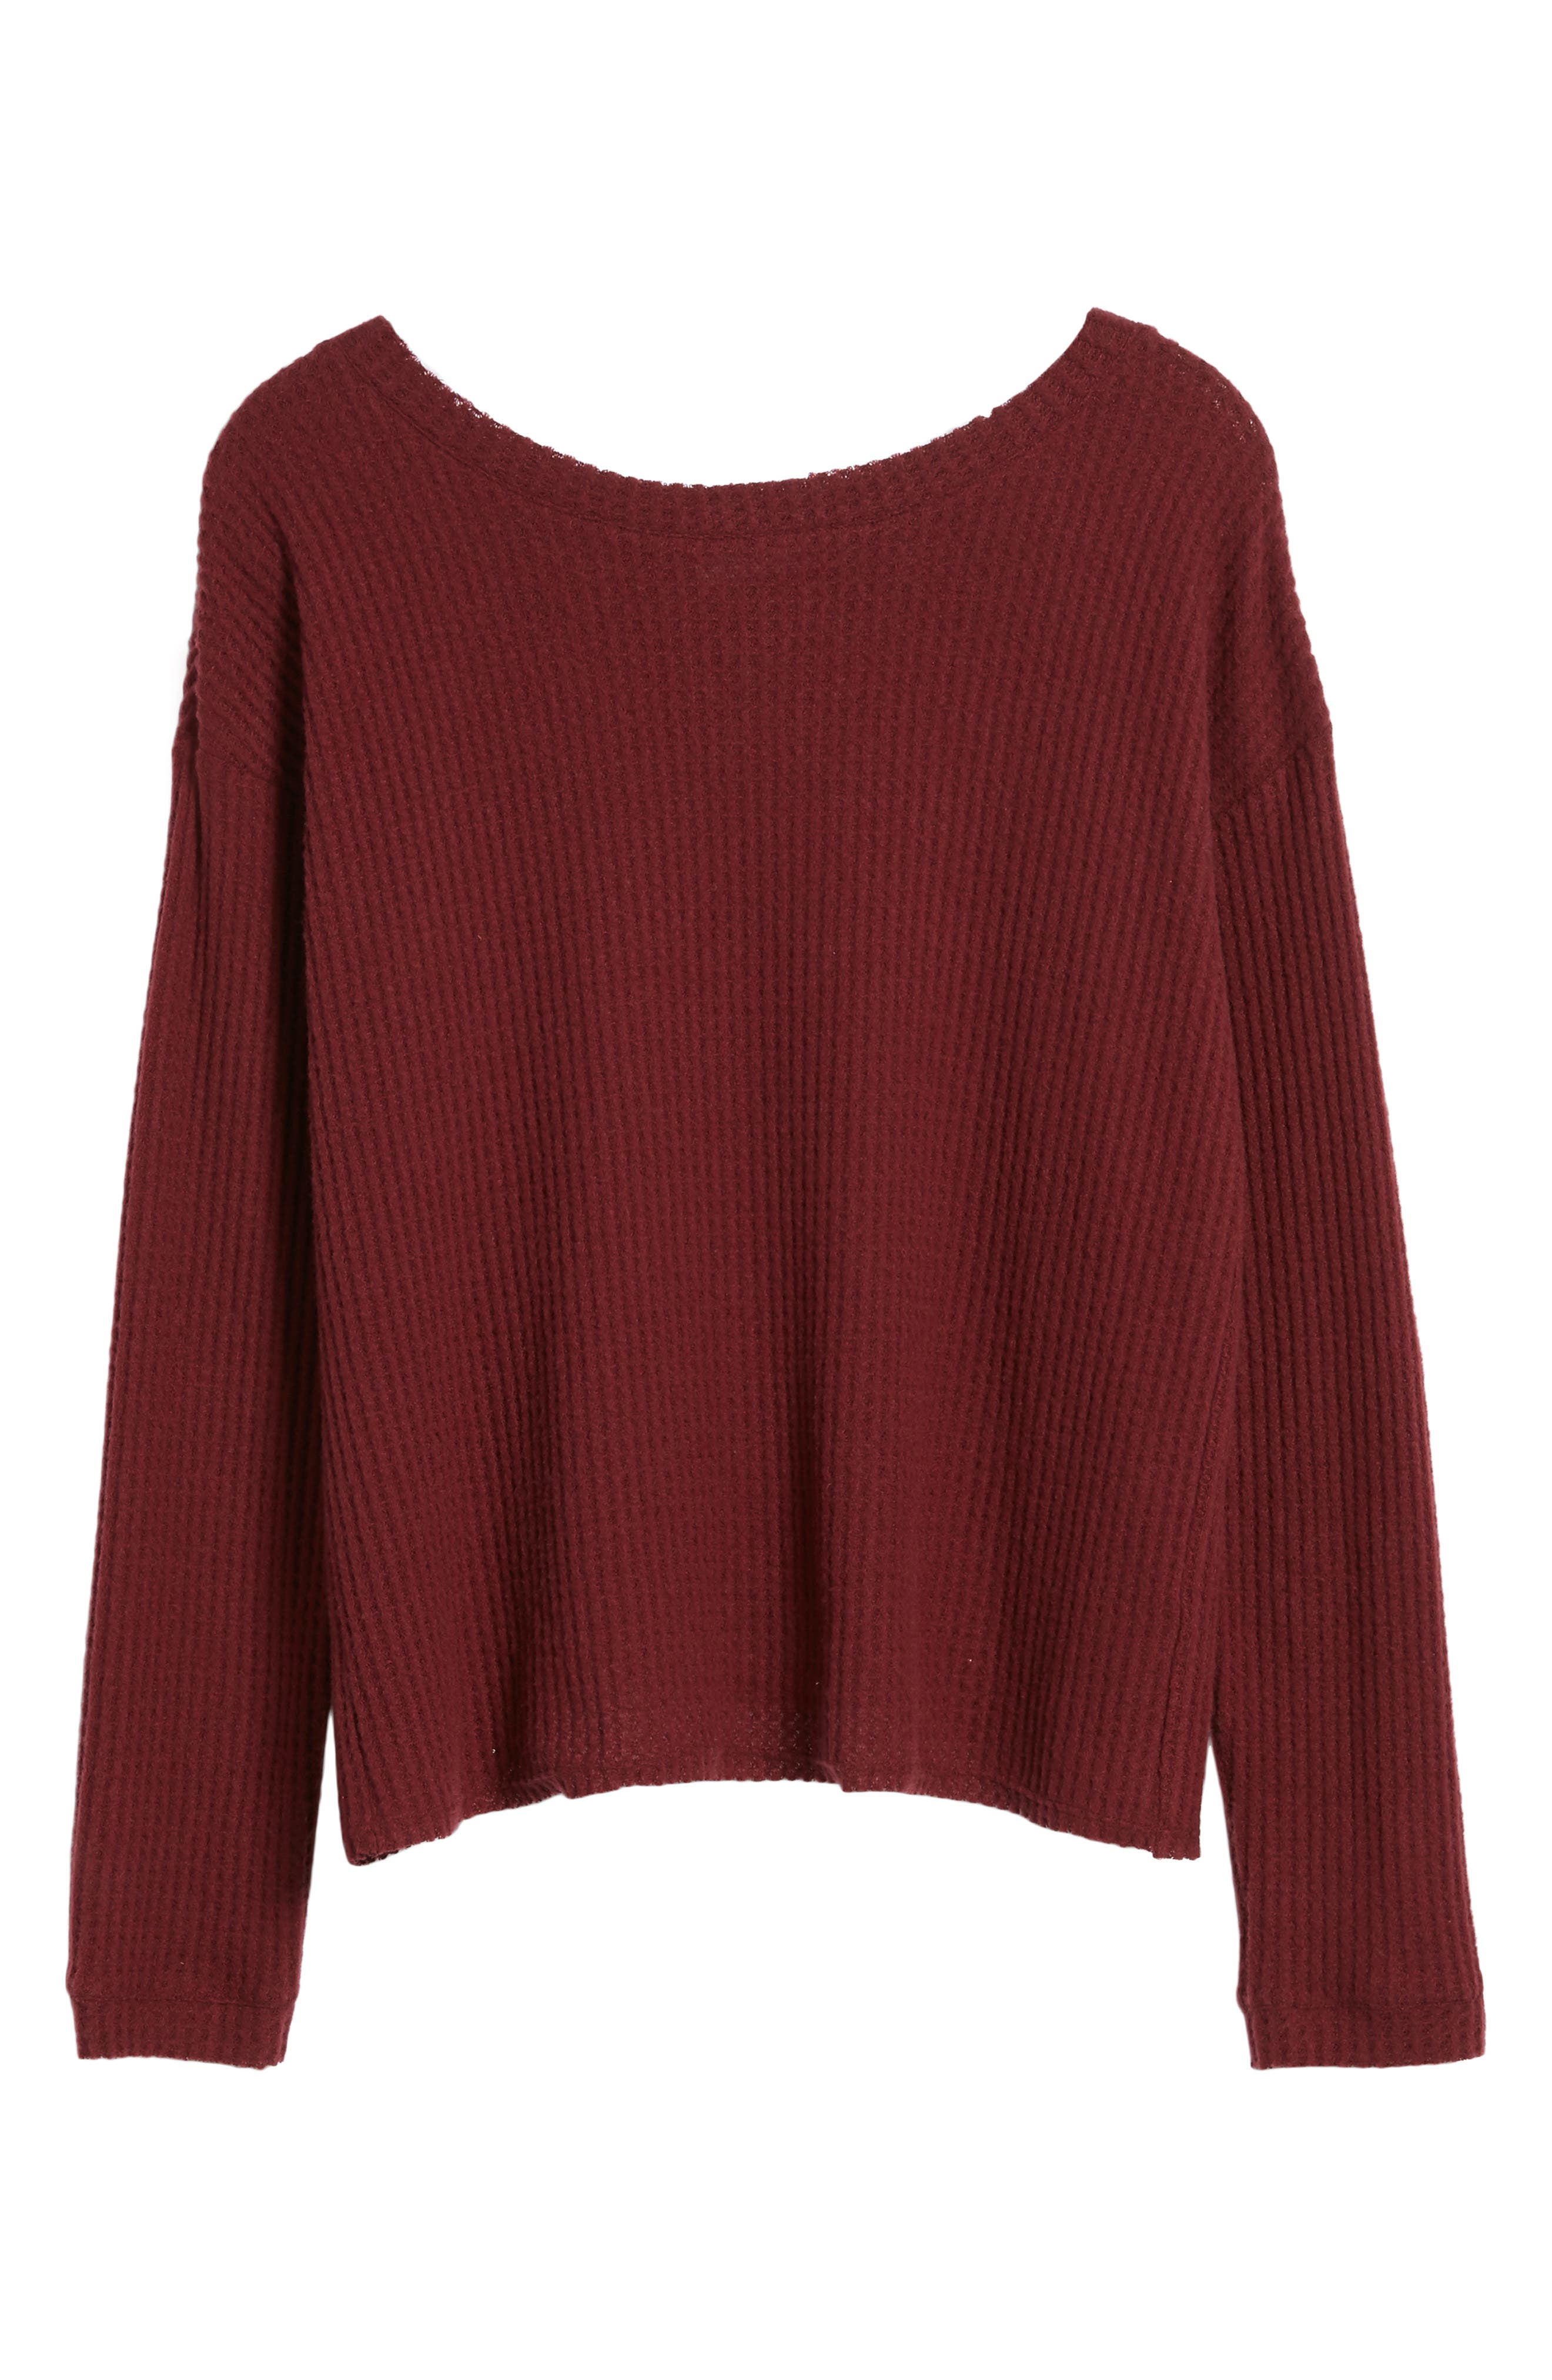 Waffle Knit Top,                             Alternate thumbnail 6, color,                             Red Cordov